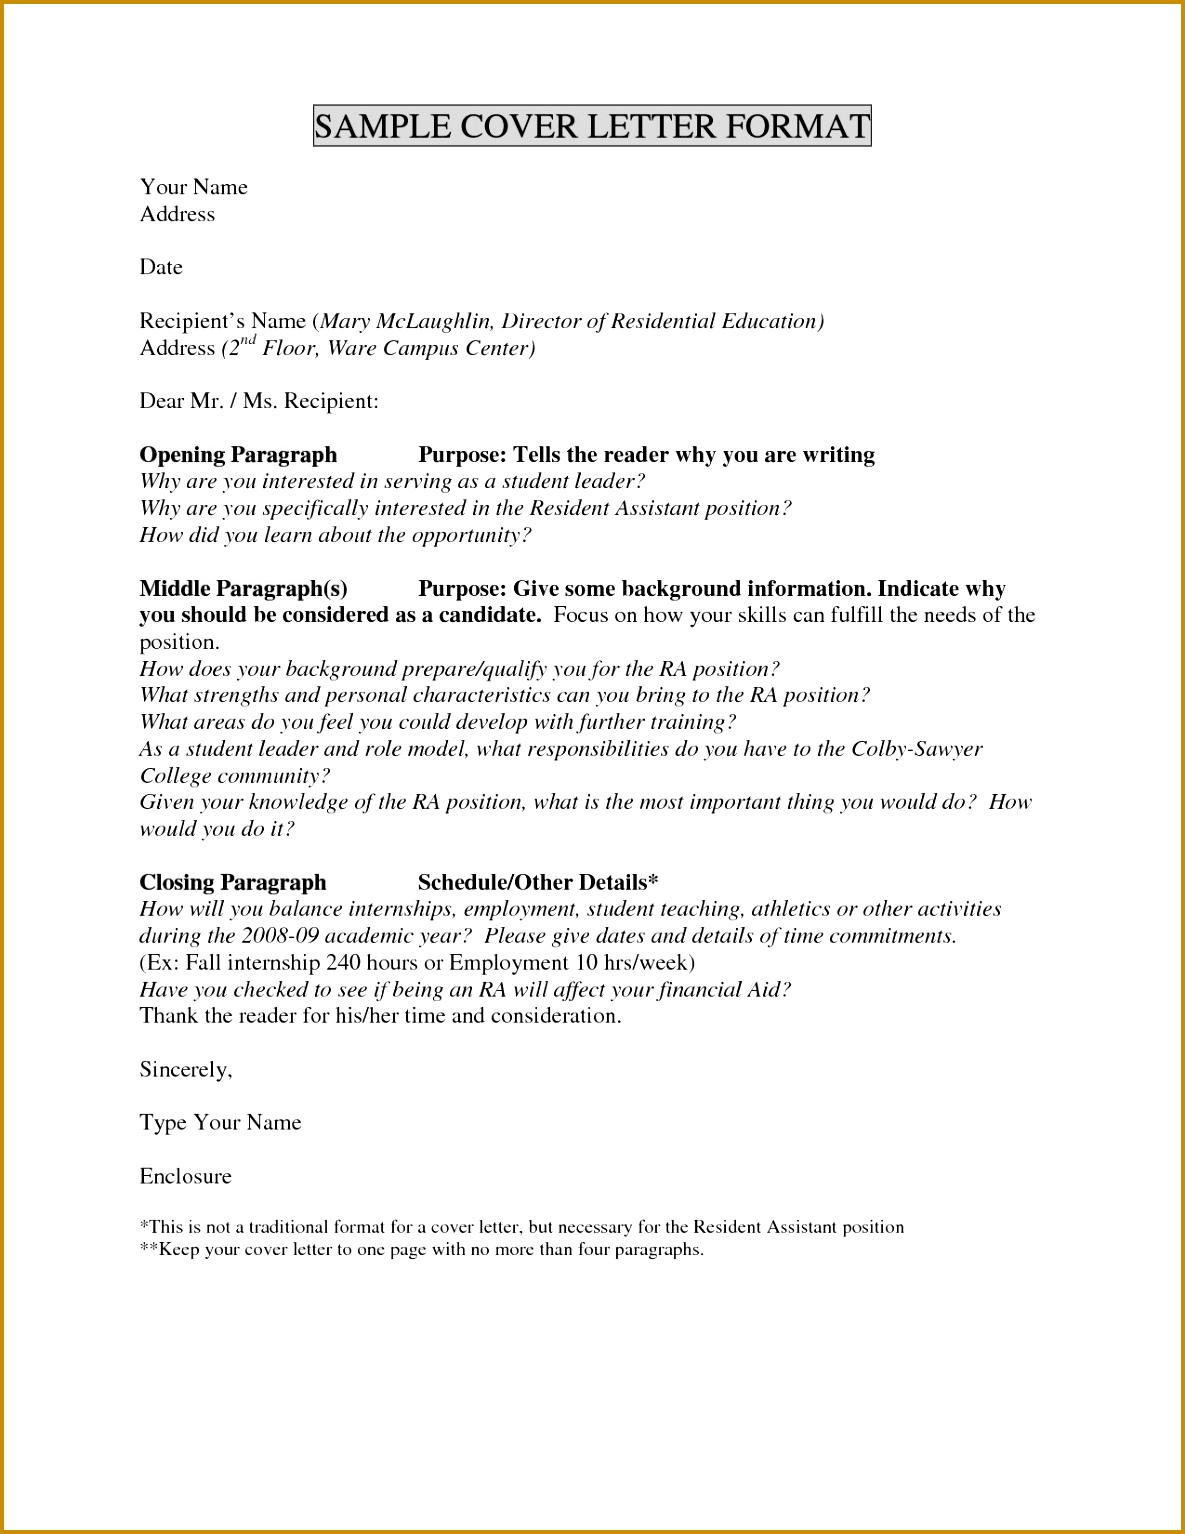 Cover Letter Samples For Employee Referral Fresh Unique If I Apply To More Than E Internship At The Same Place Od I 15341185